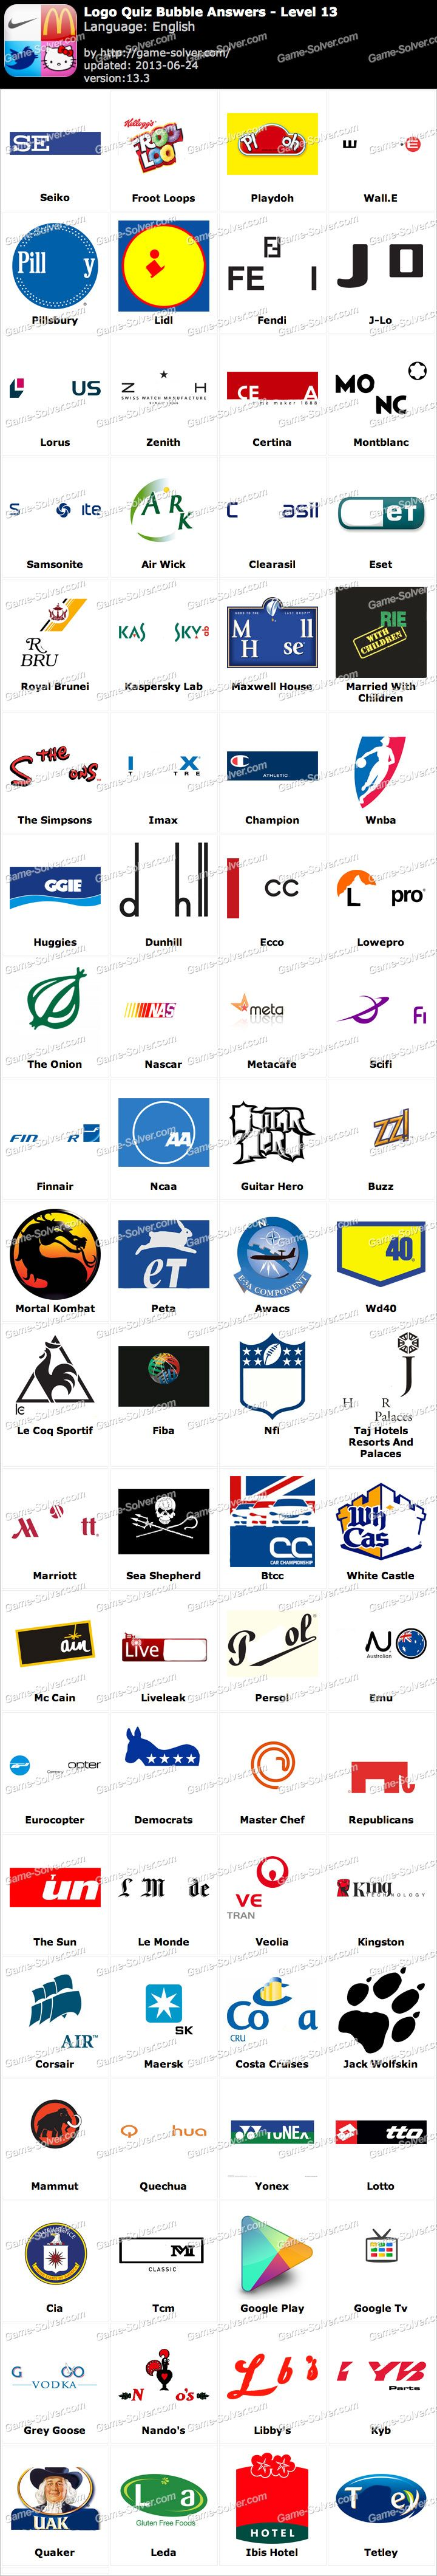 logo quiz by bubble answers level 13 spel antwoorden